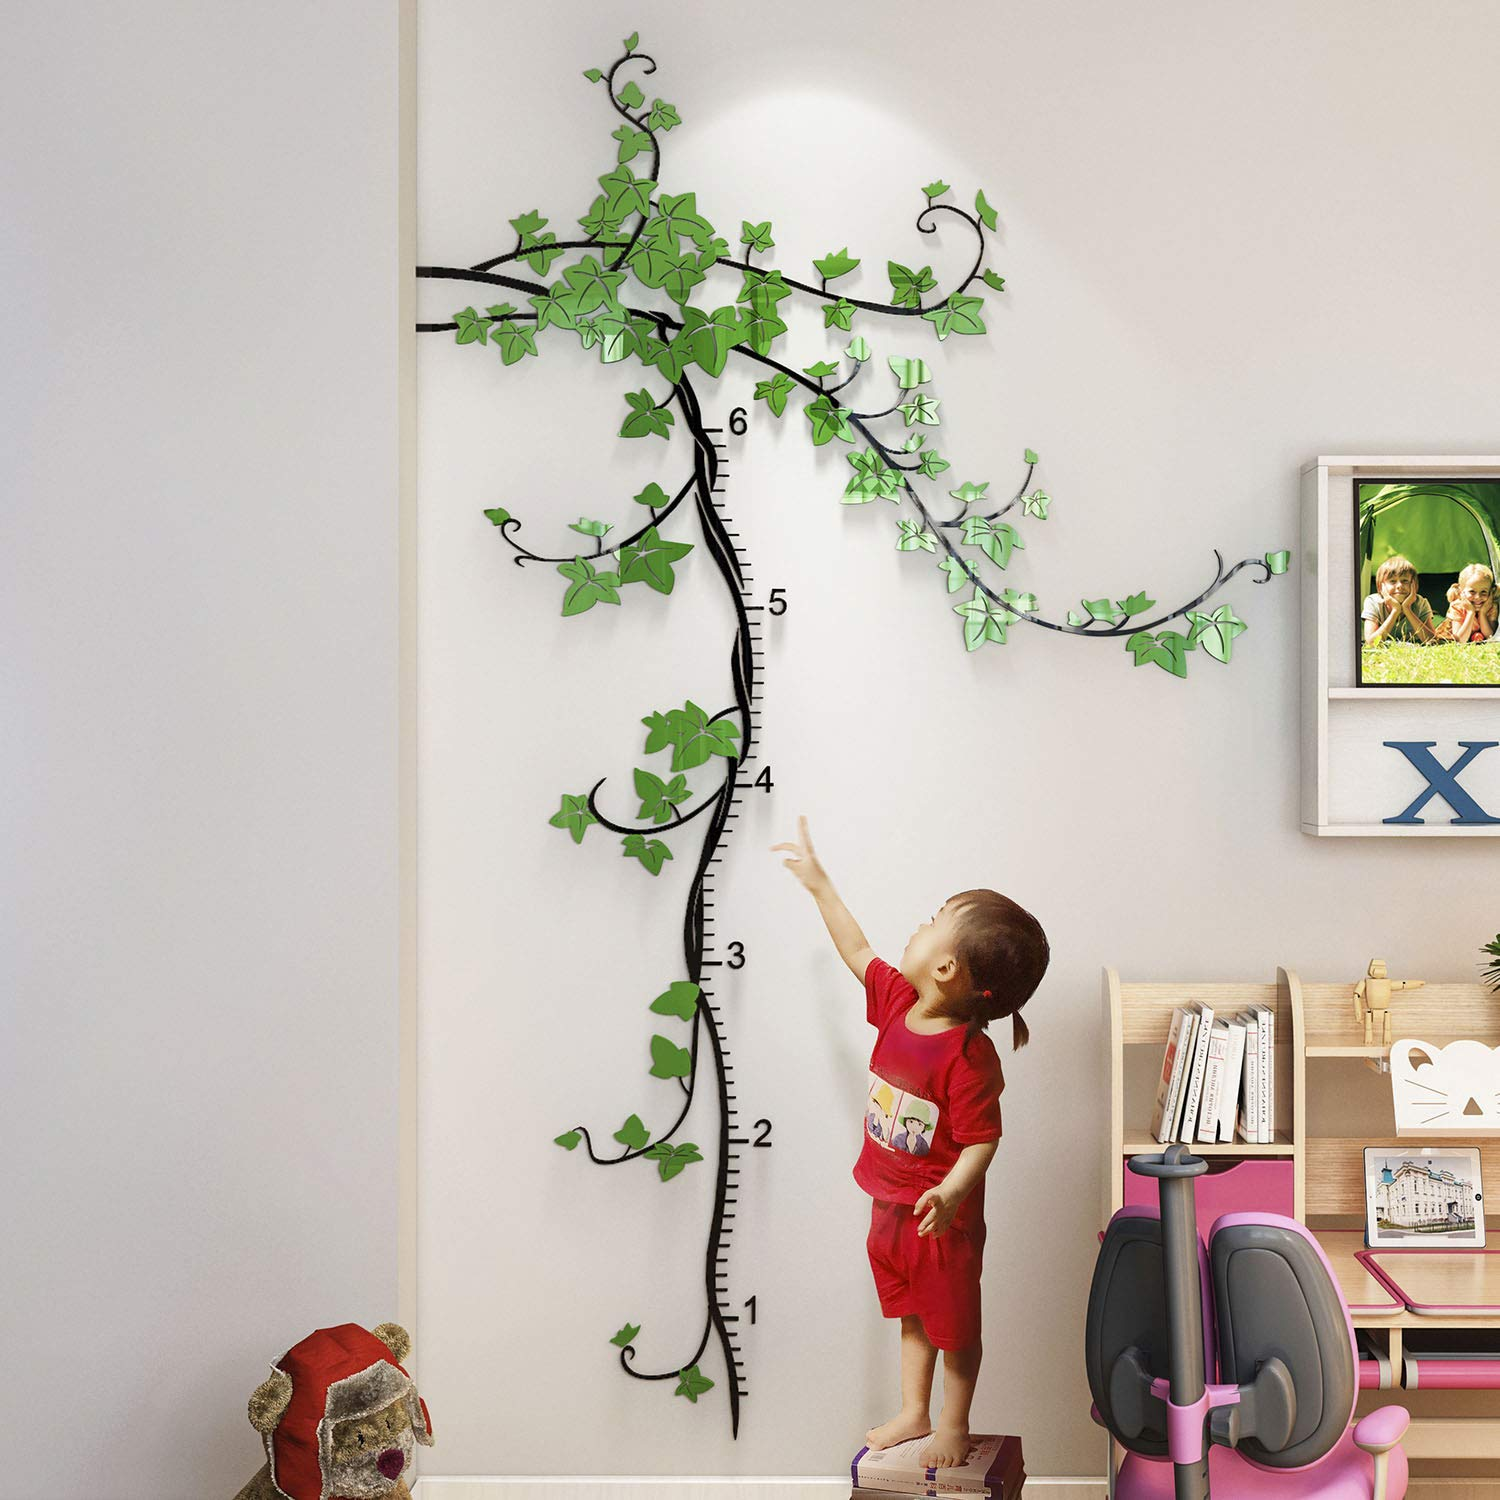 DecorSmart Baby Growth Chart for Kids Wall Sticker, Growth Height Measure Chart Ruler for Boys Girls Kids Toddlers Babies Childrens Nursery Room from Baby to Adult, Removable Ivy Wall Room Decor Ruler